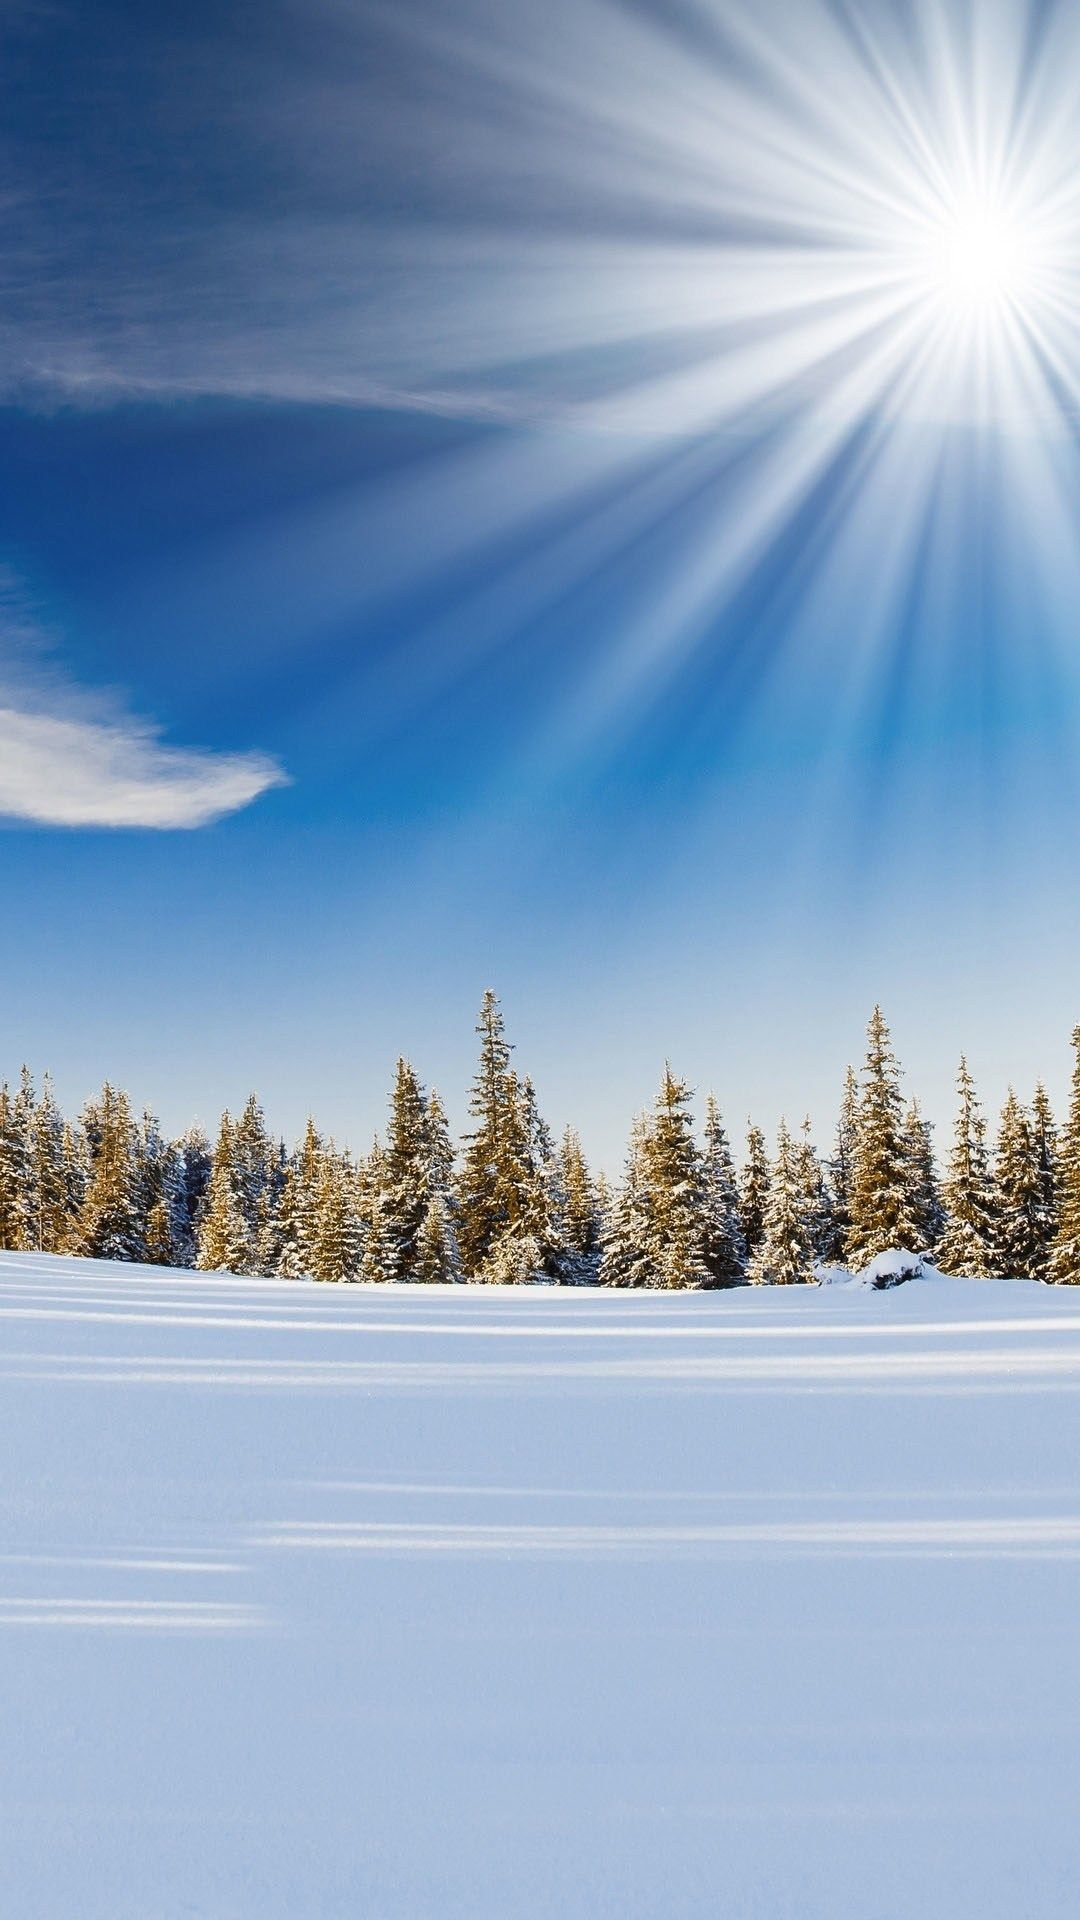 Winter Sunlight Snowy Forest Iphone 6 Plus Wallpaper Iphone Wallpaper Winter Android Wallpaper Winter Background Images